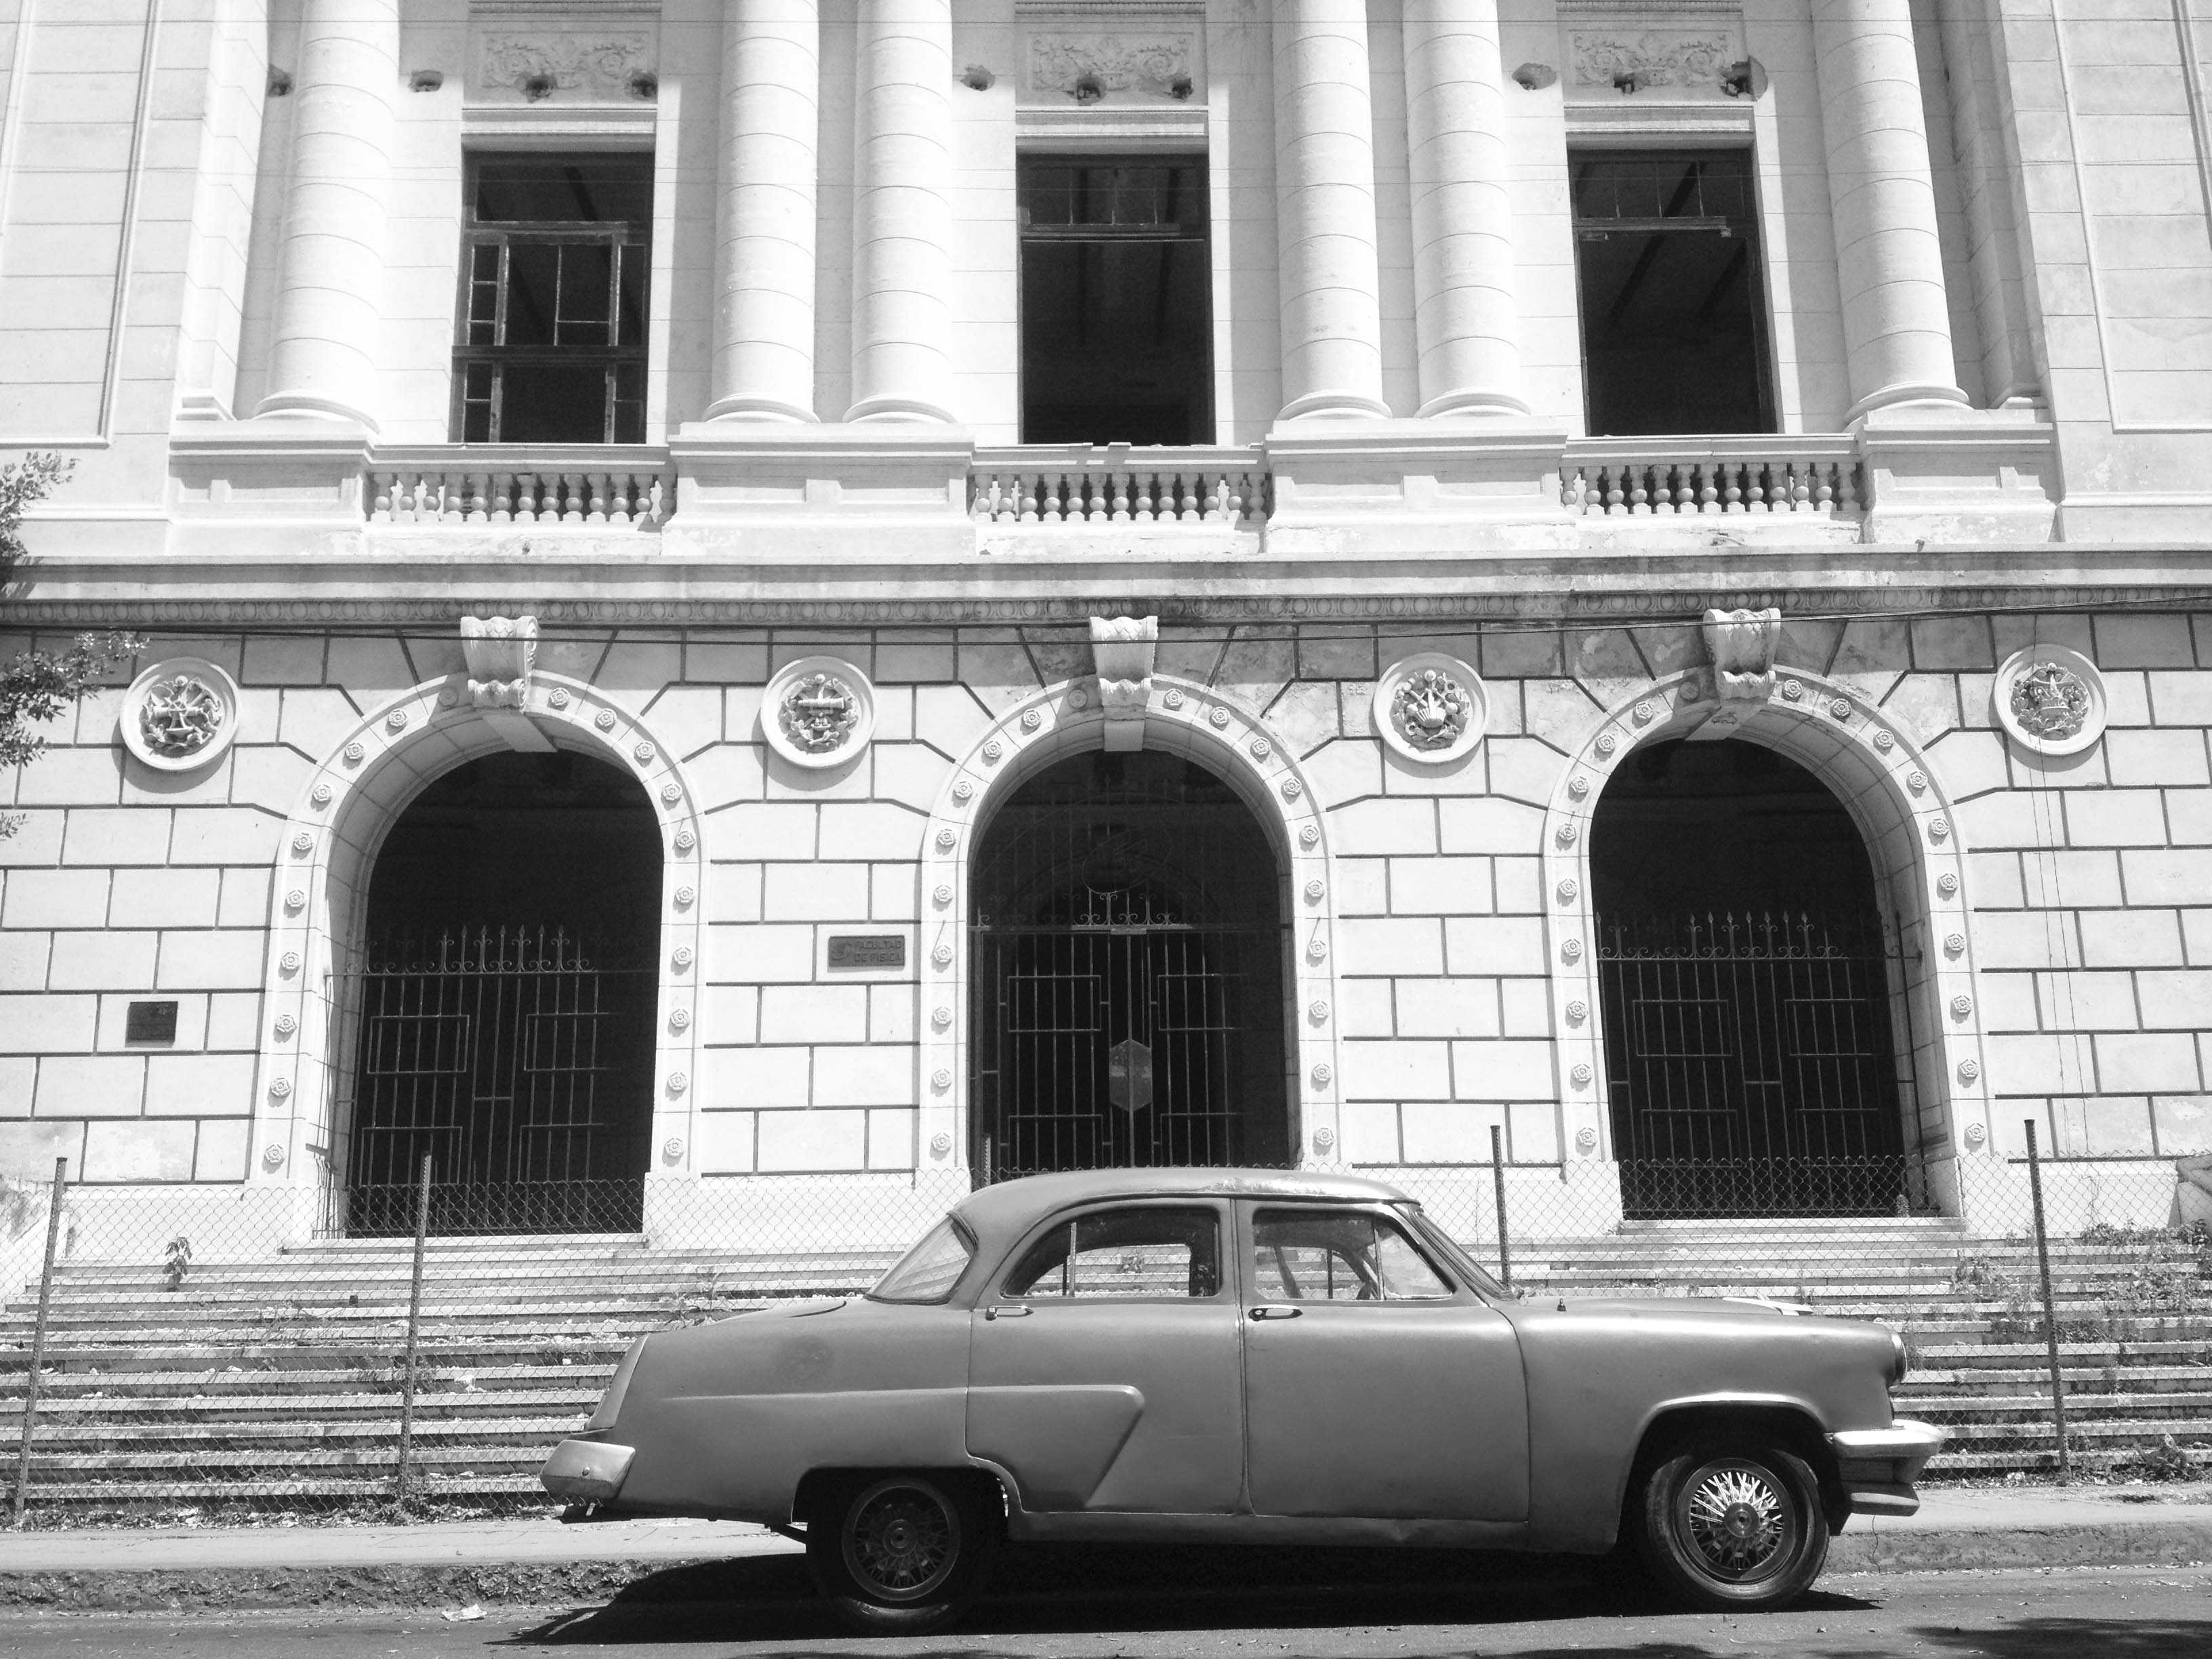 Spanish architecture and 1950's American car in Havana.